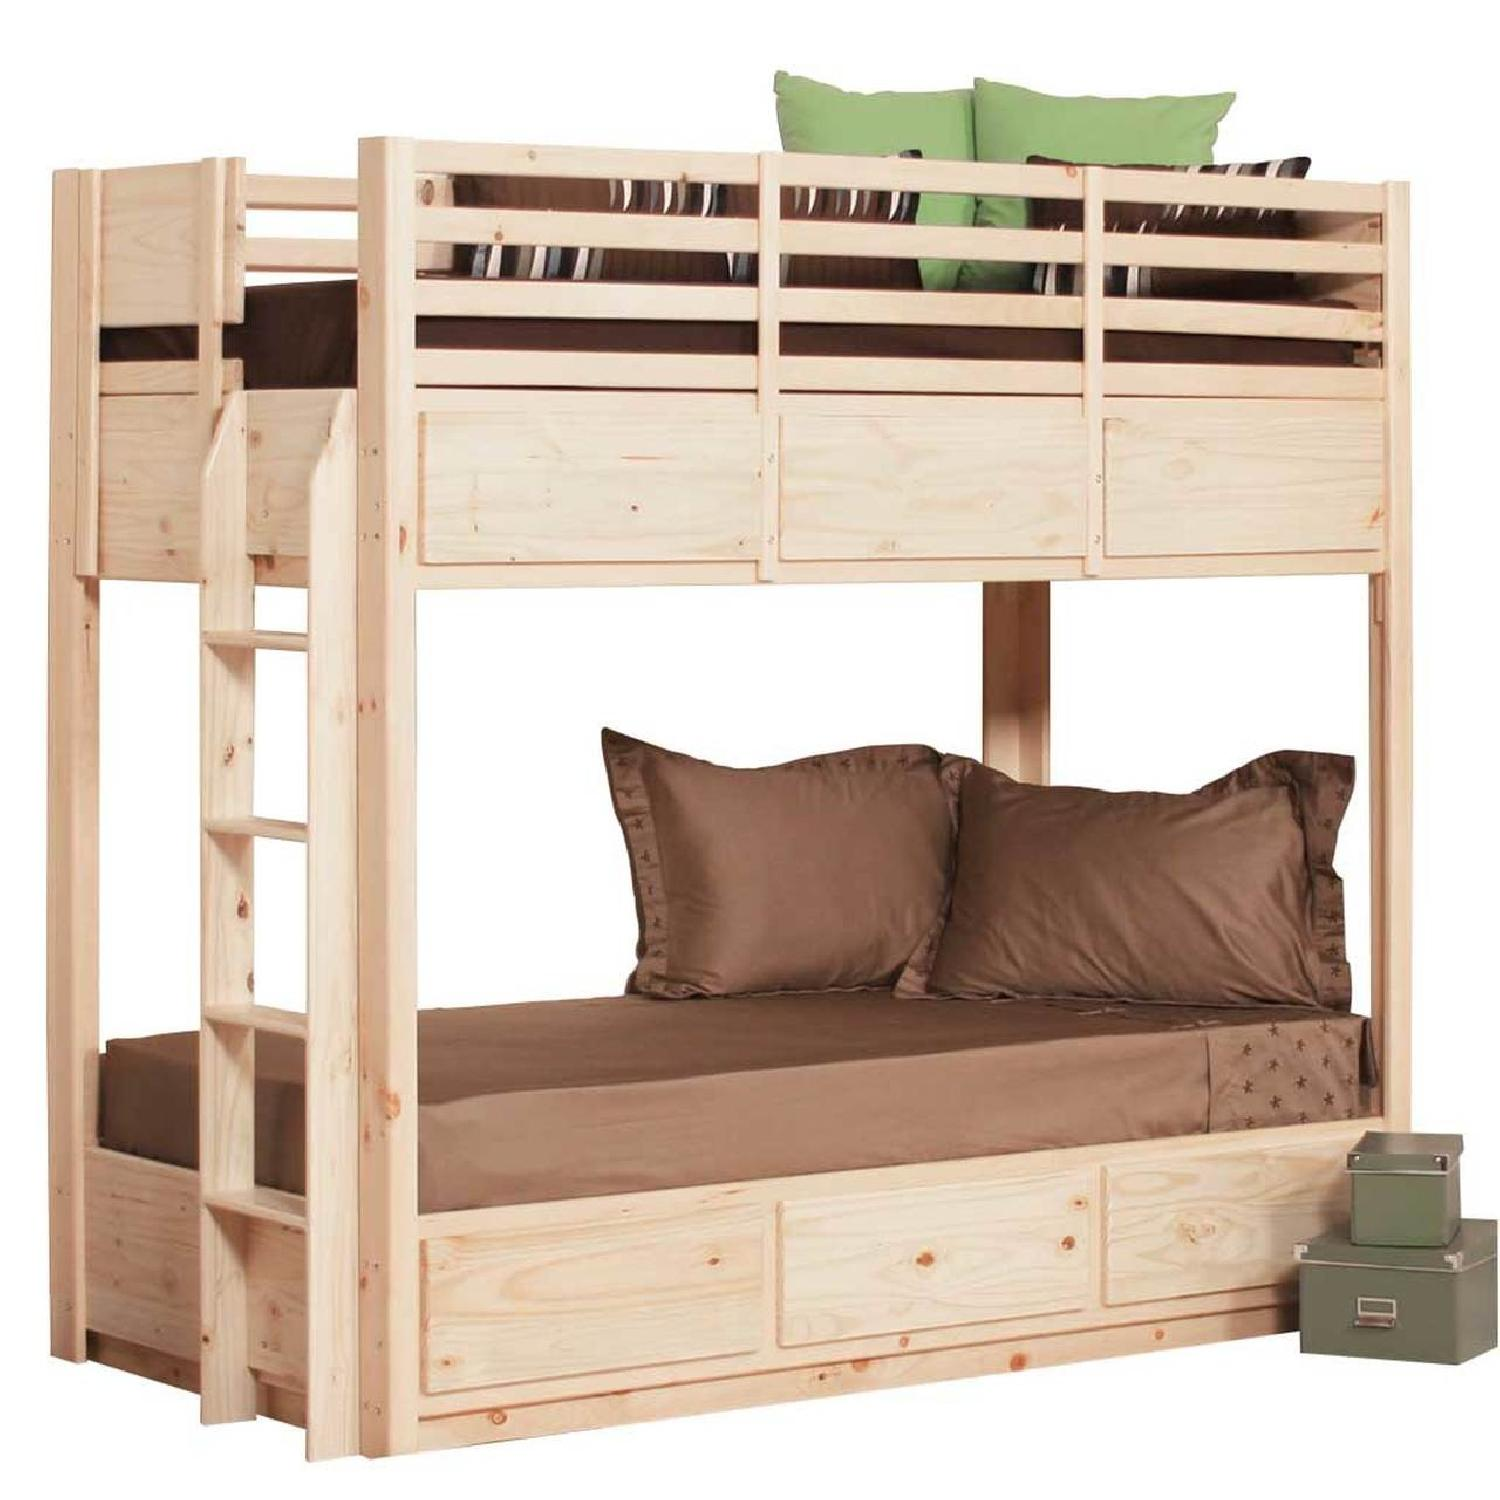 Gothic Cabinet Craft Twin Bunk Bed in Natural Pine Wood-3